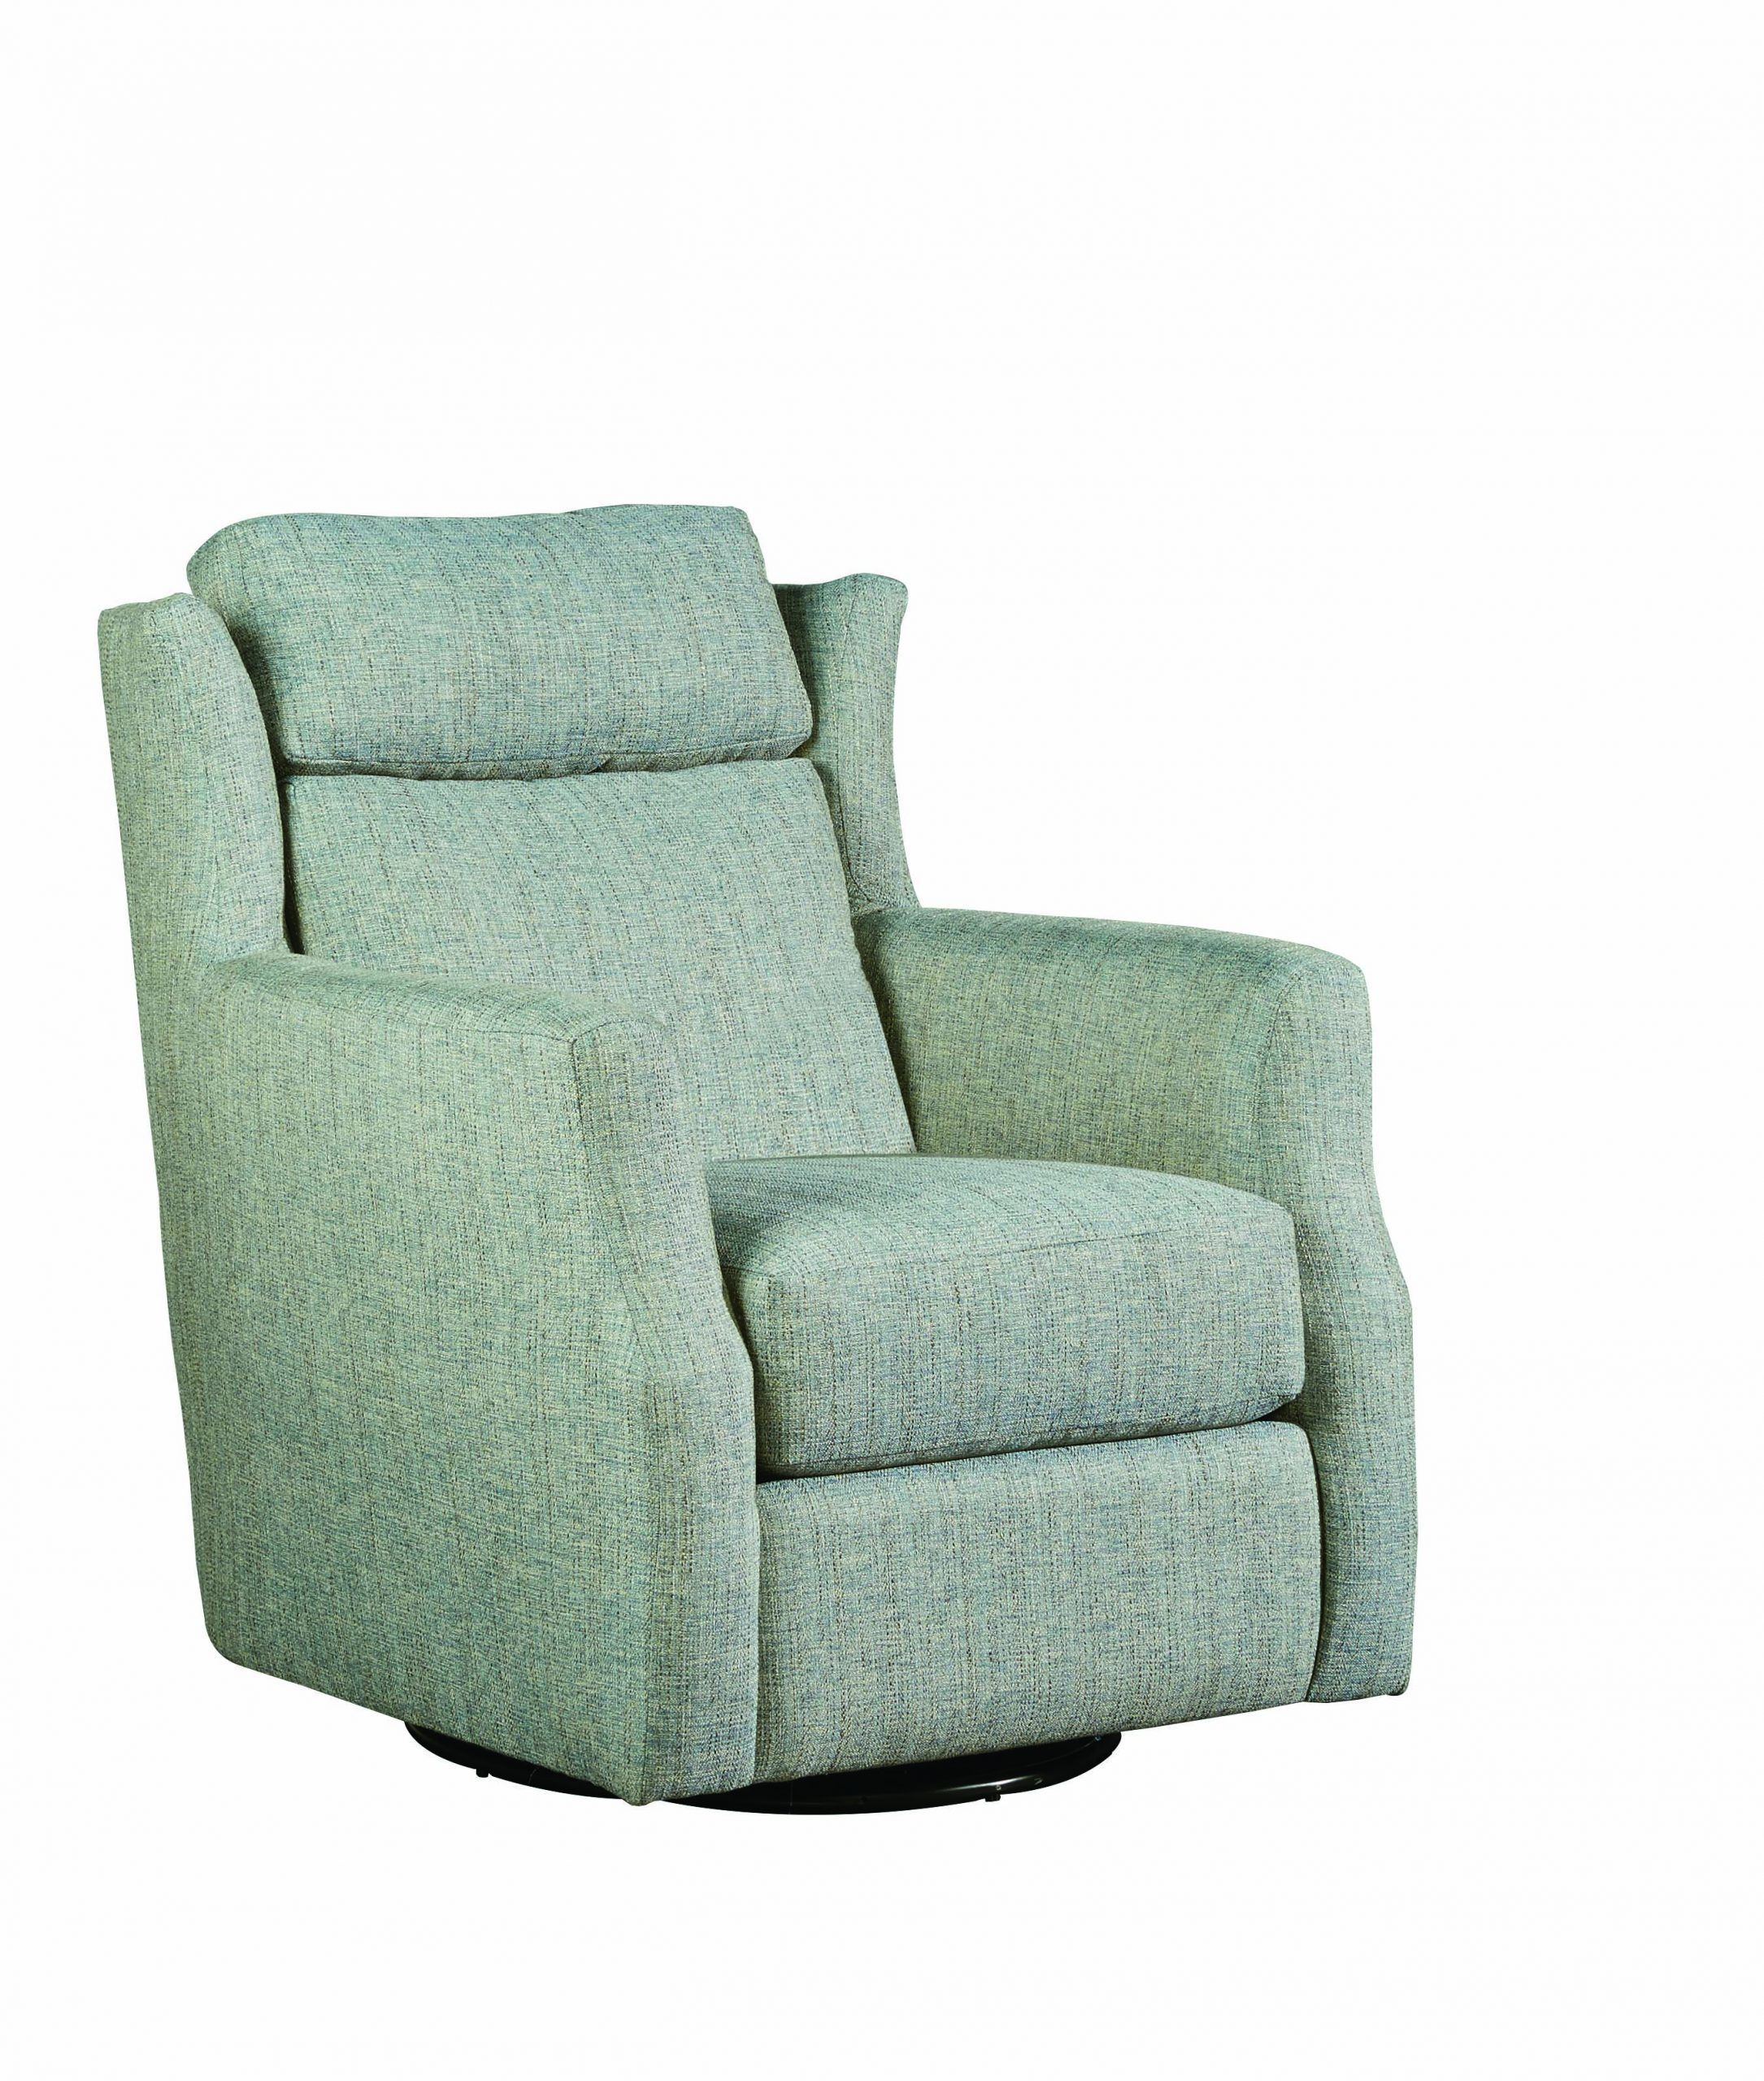 Southern Motion Furniture Glider